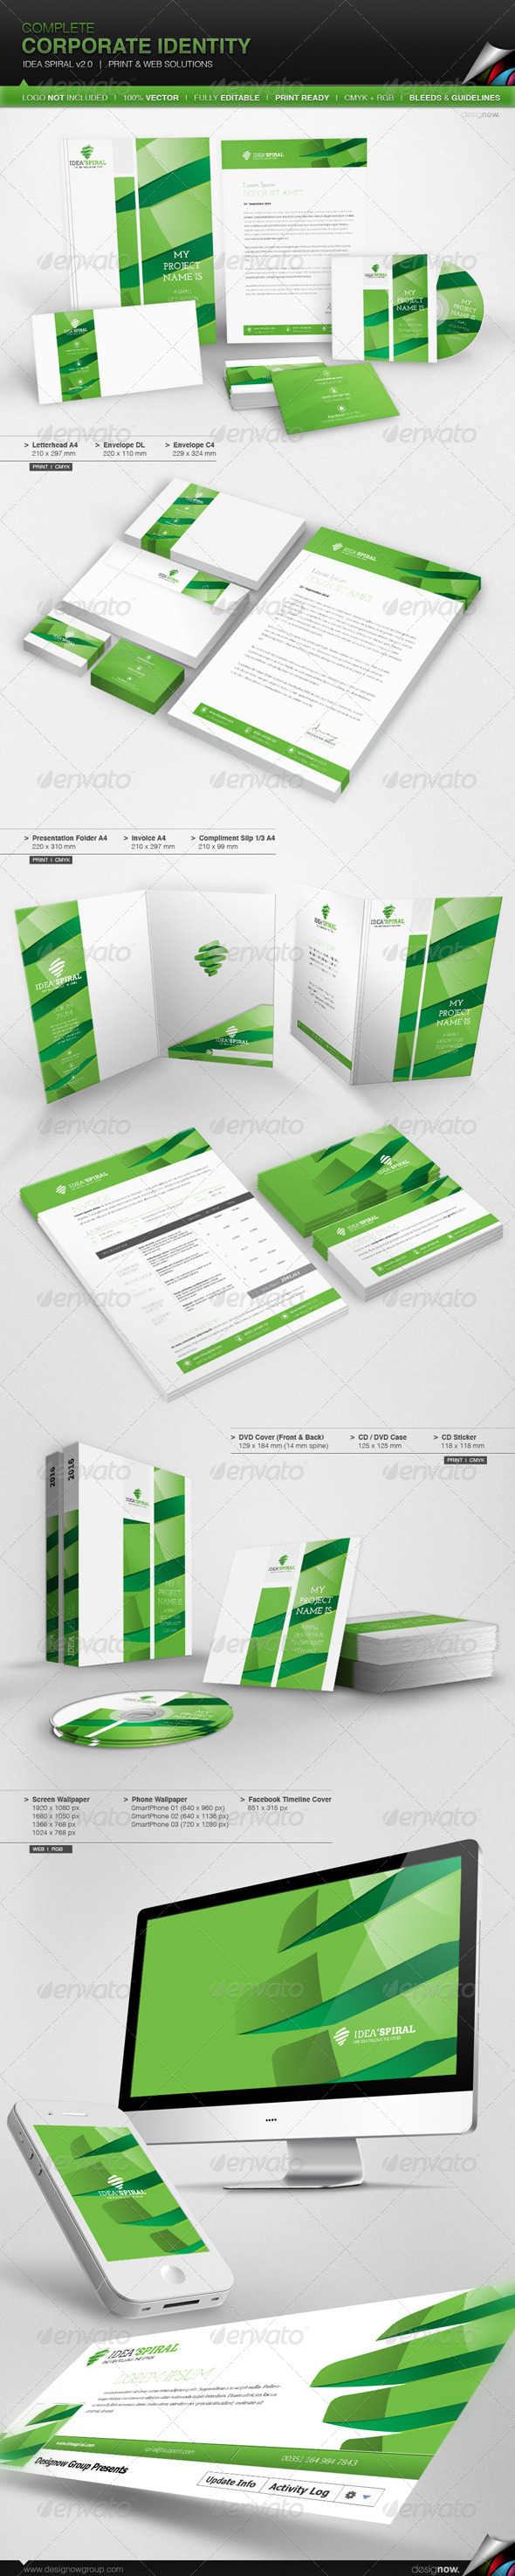 Corporate Identity - Idea Spiral v 2.0 - Stationery Print Templates